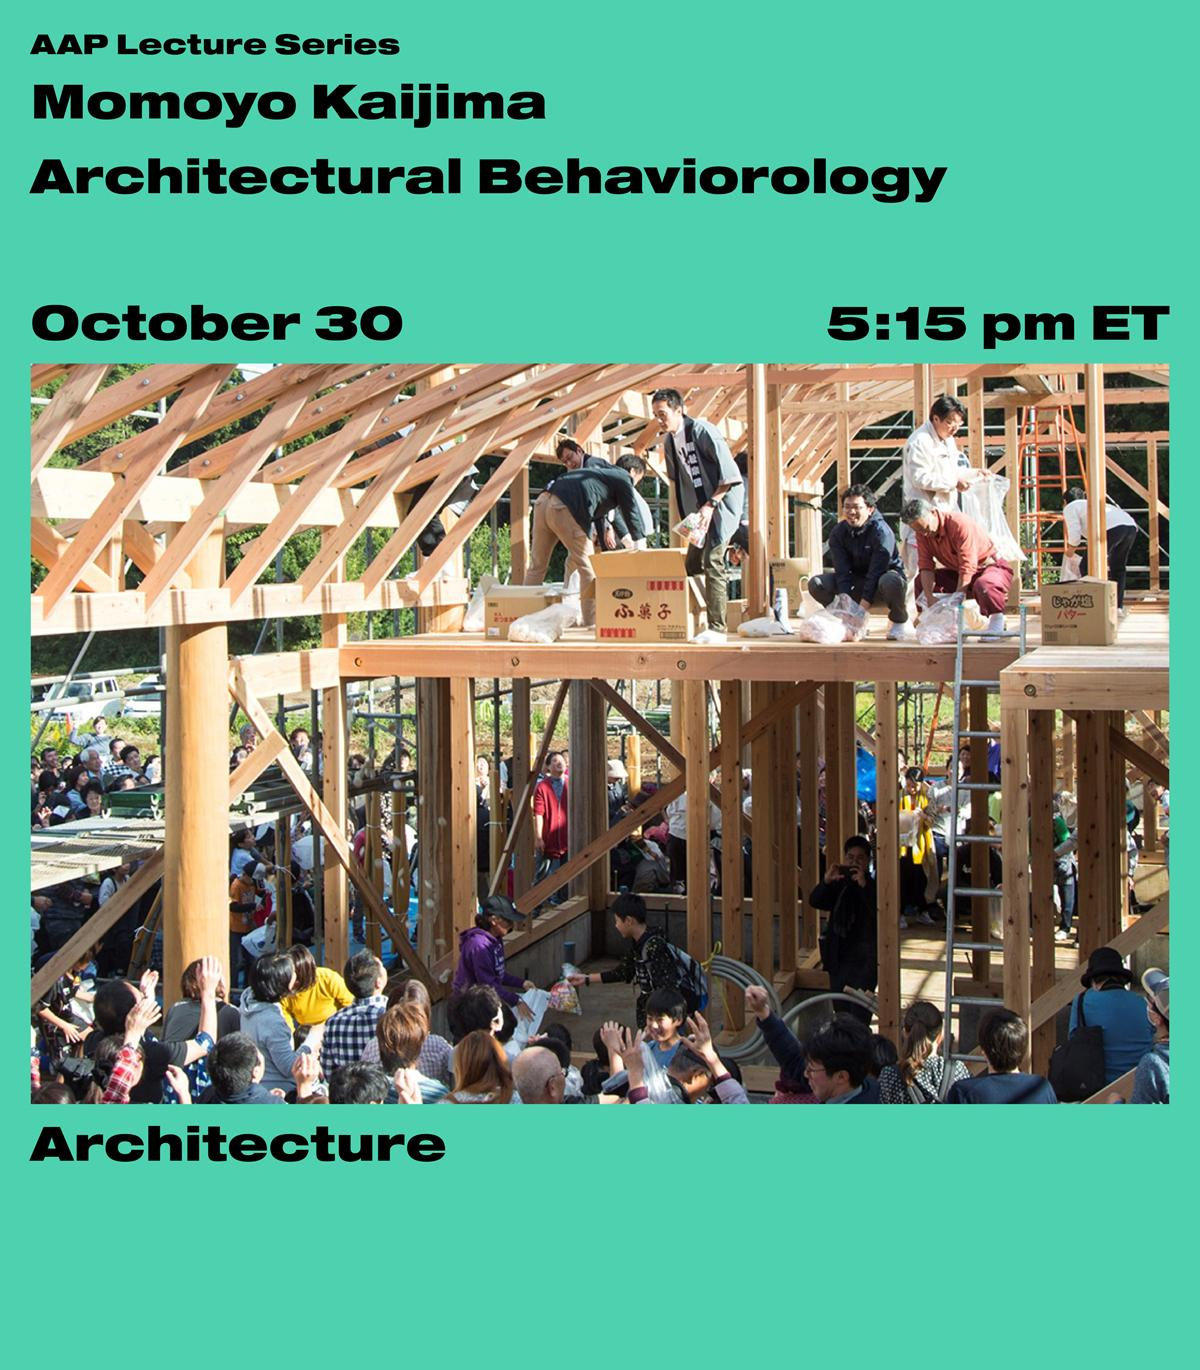 Image of people many people on a wooden building frame on a turquoise color field with text promoting the lecture